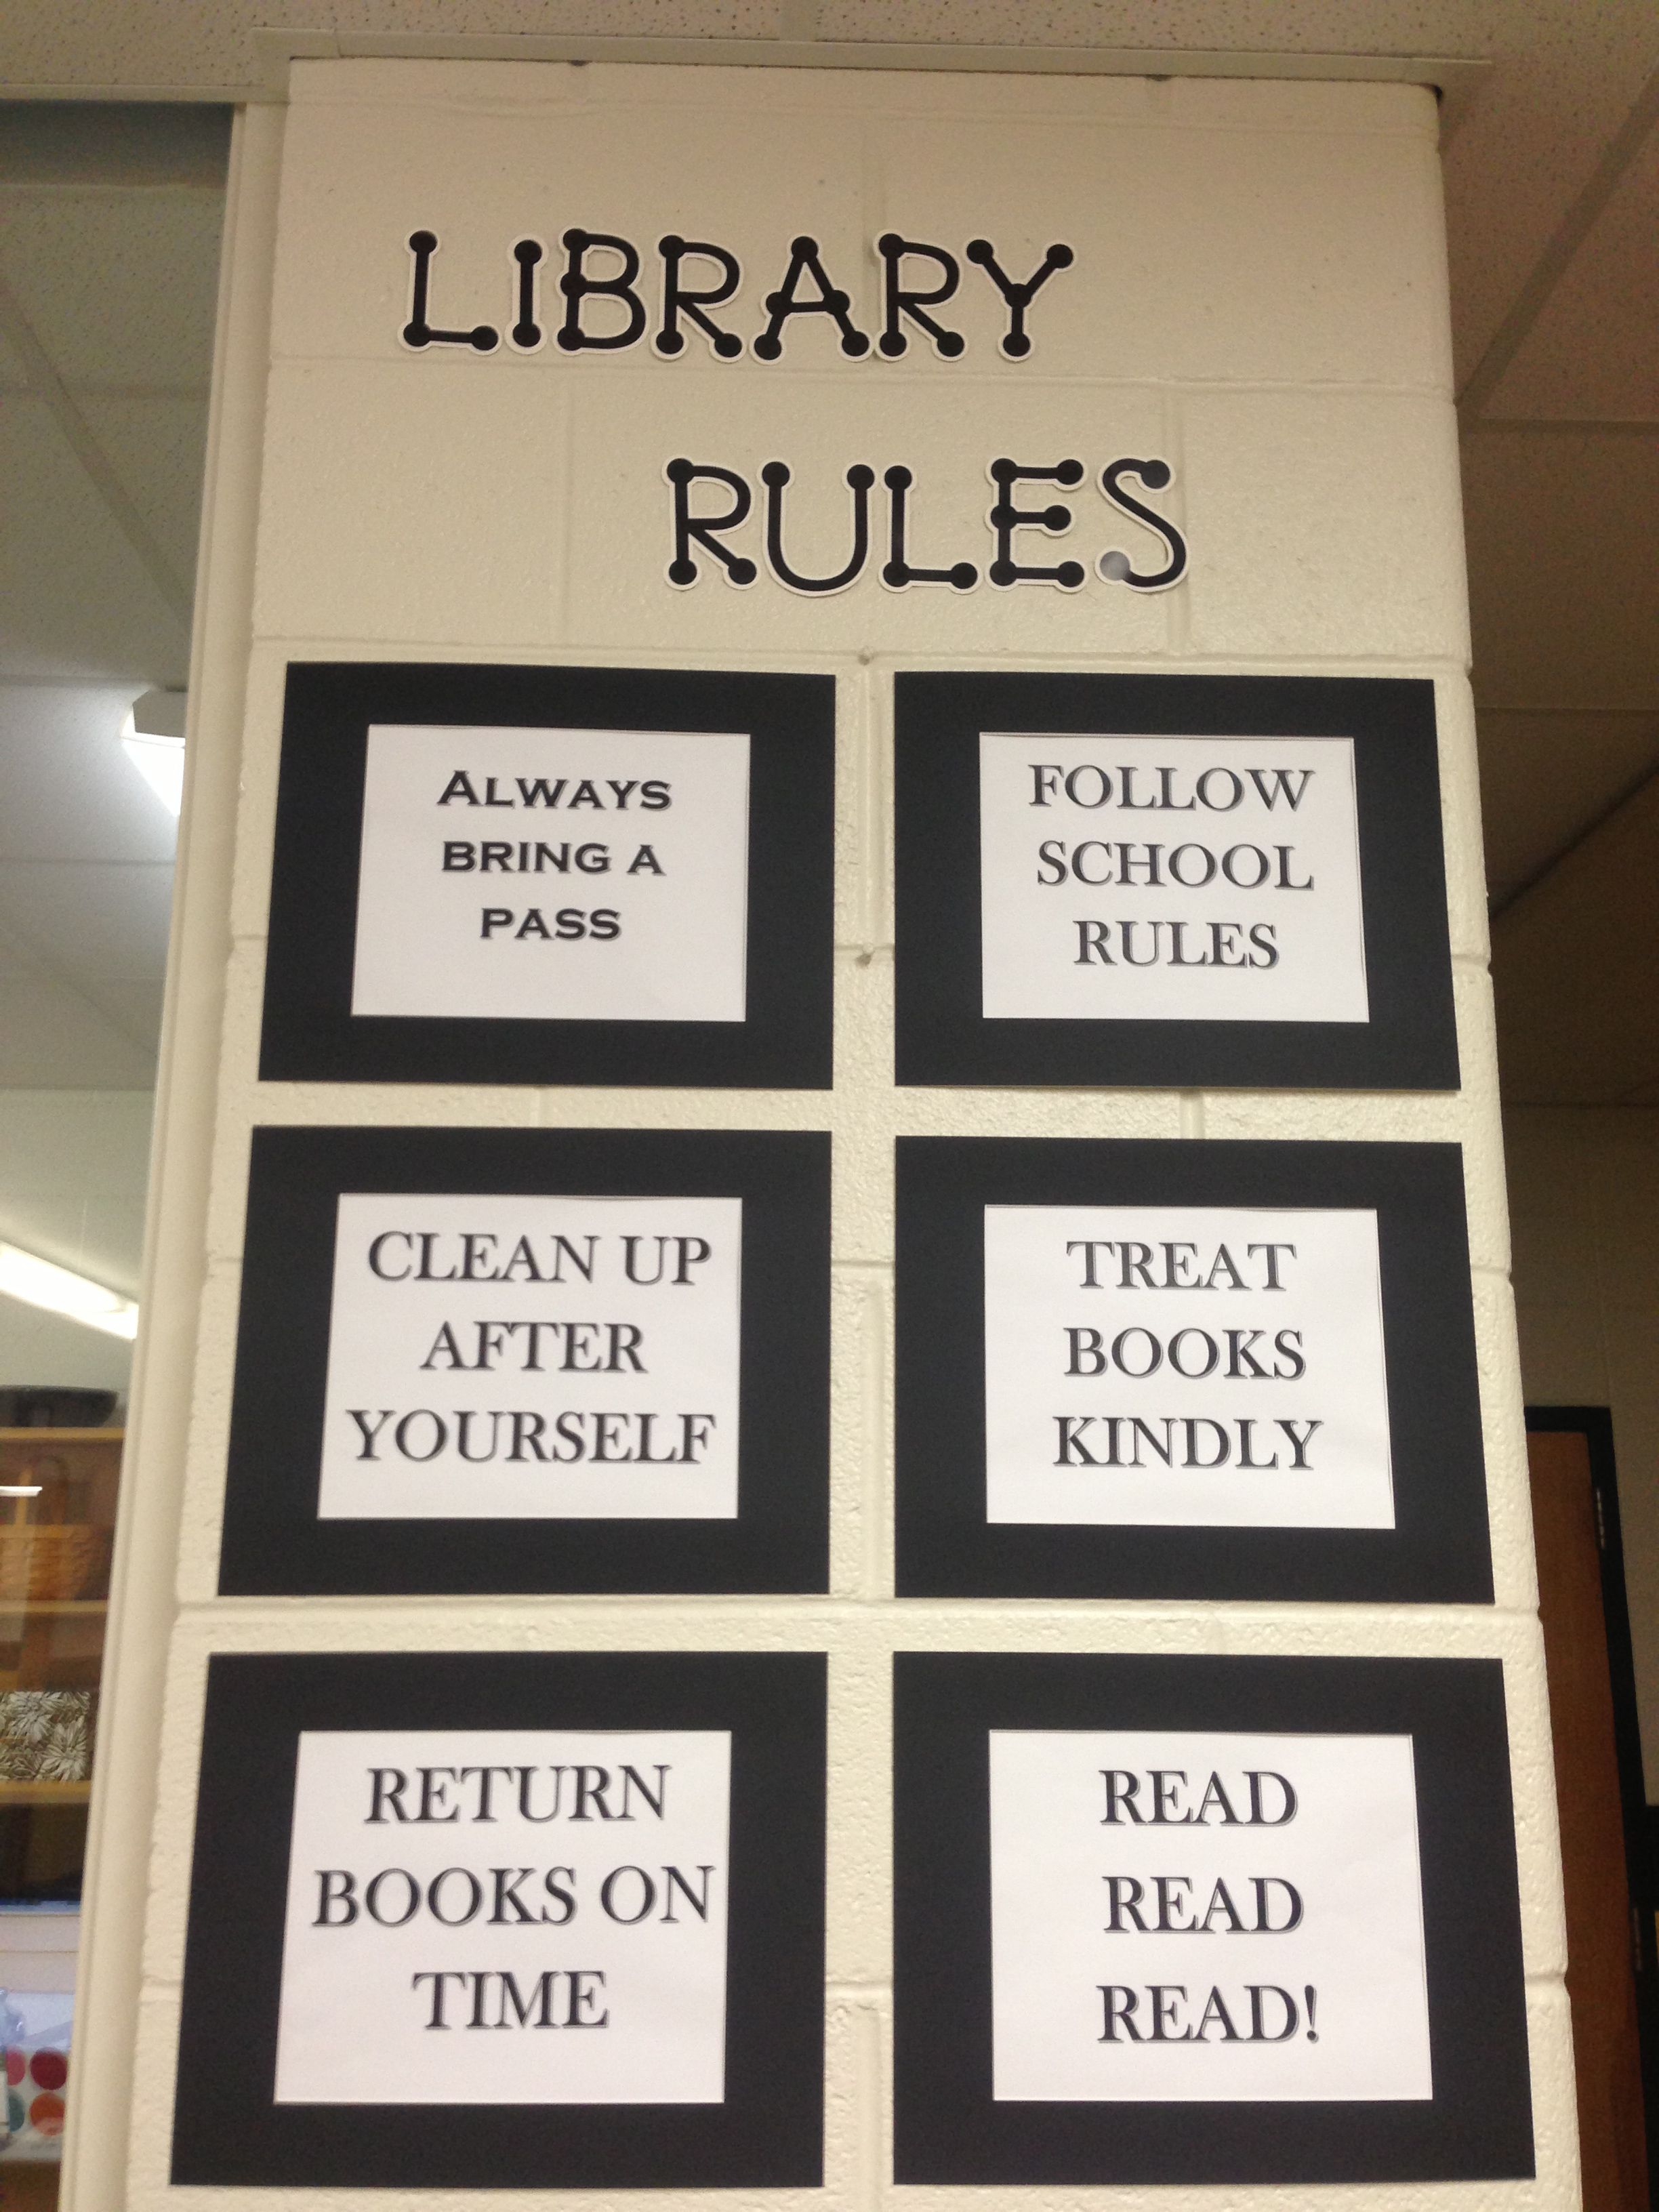 high school library rules Springs Valley Jr. Sr. High School ...